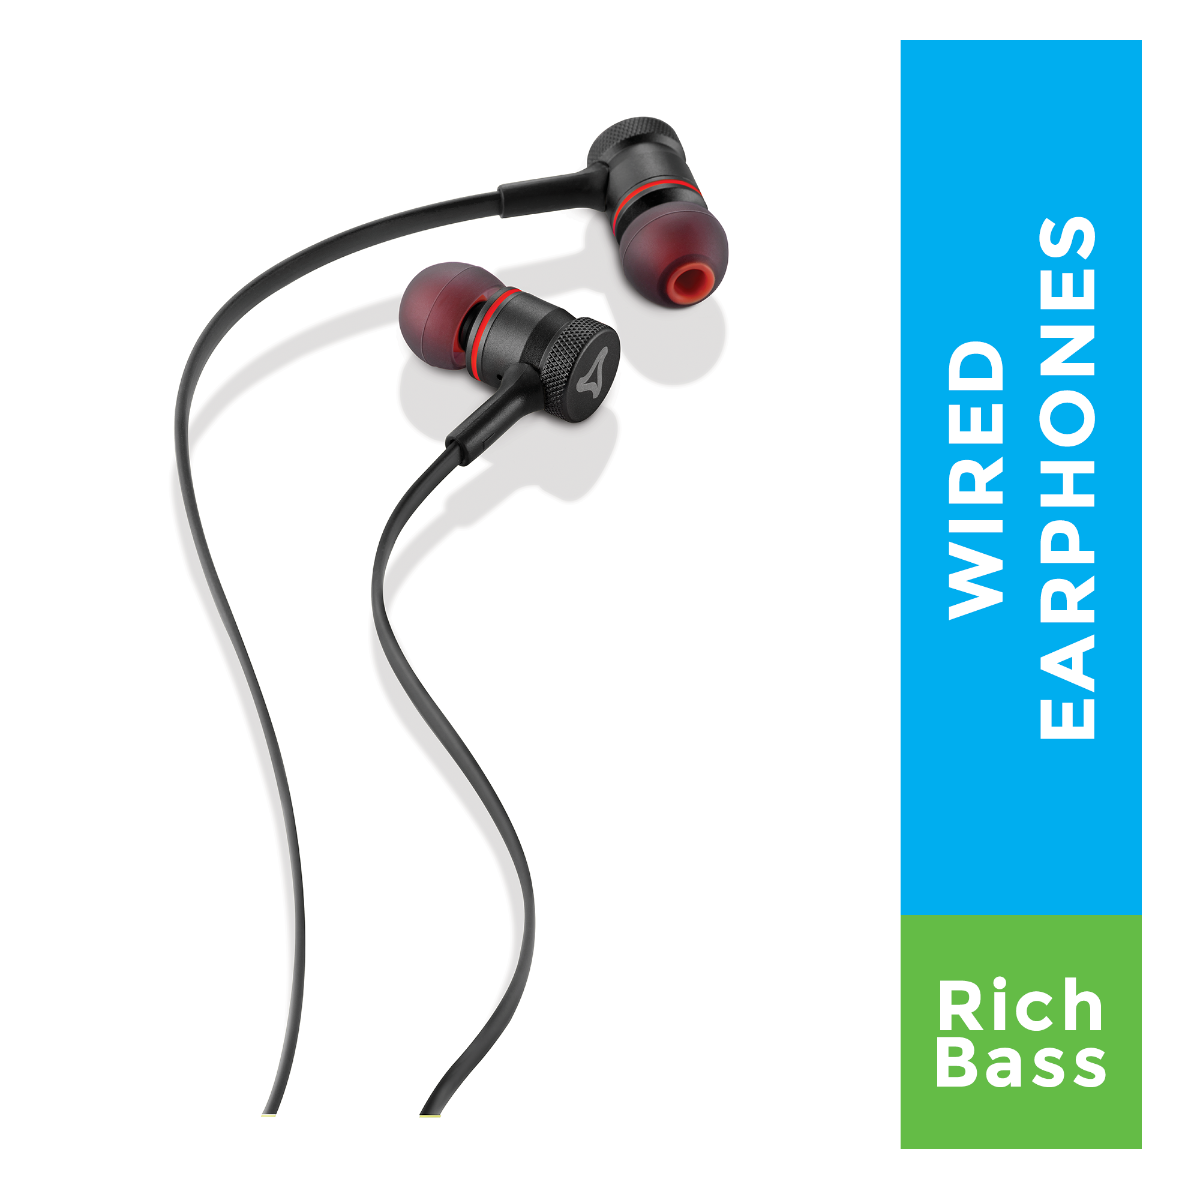 UltraBass HE2000 Earphones